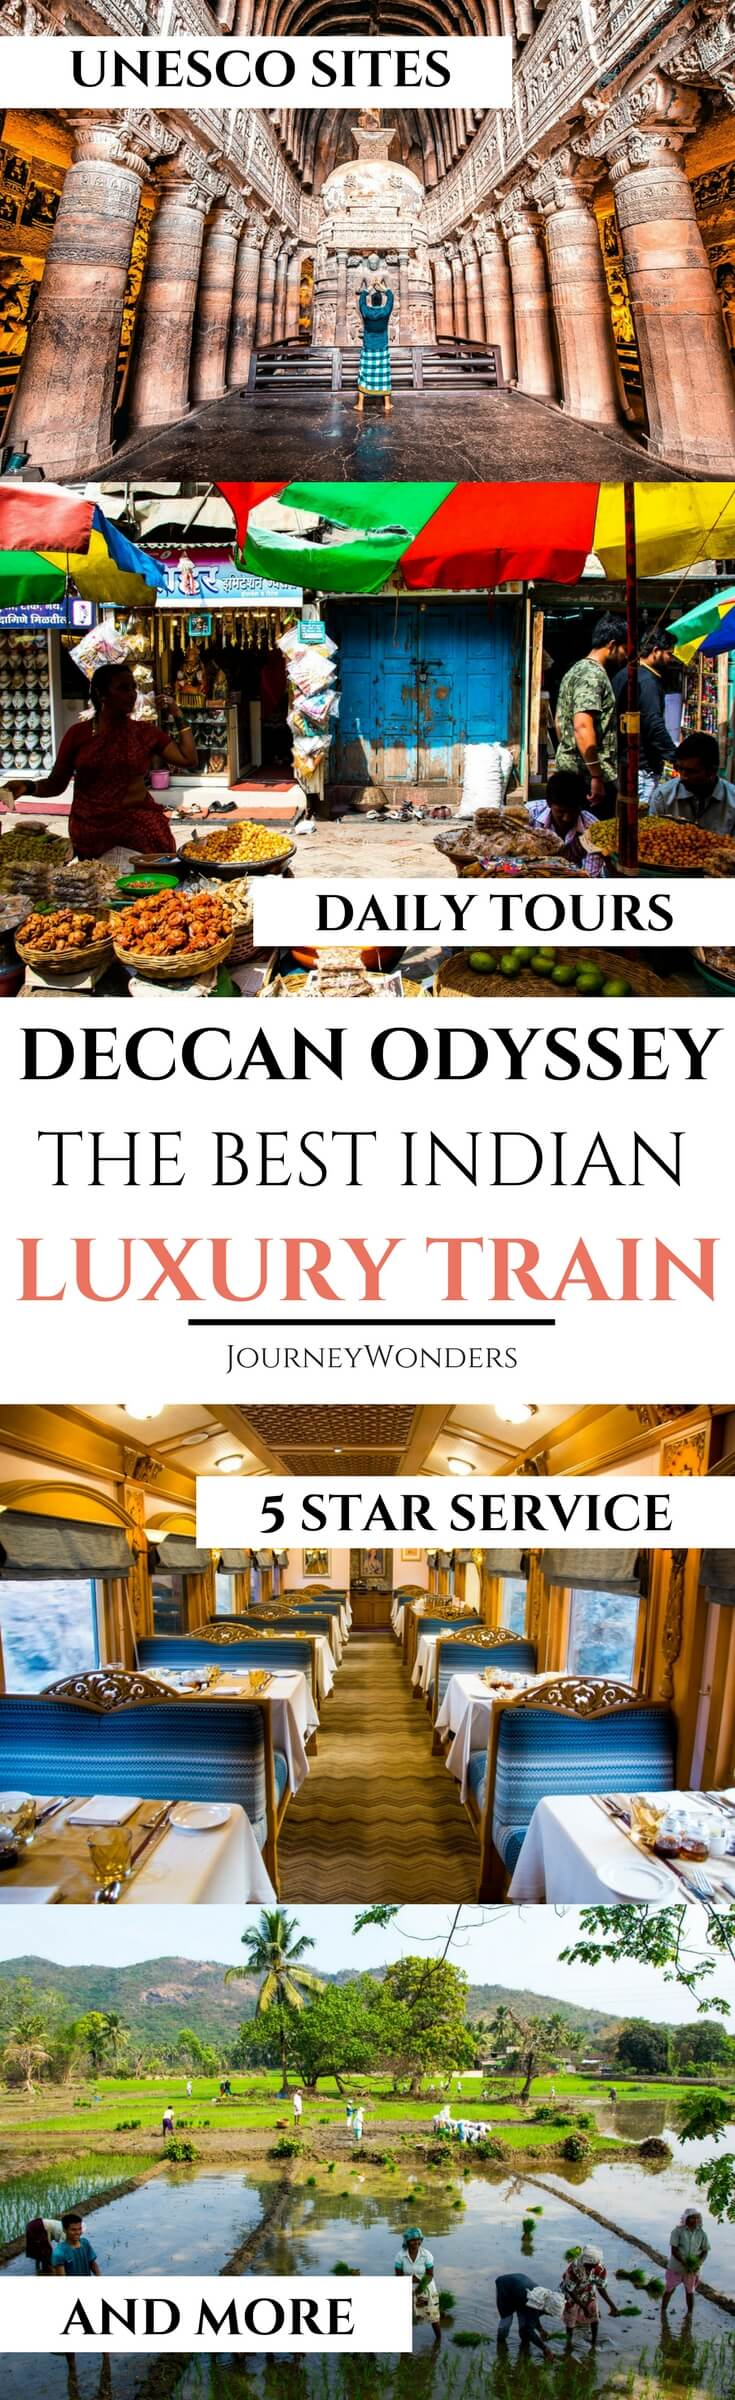 Want to travel like a Boss in India? Read all about the Deccan Odyssey Train here and see what Luxury Train Travel in India looks like including information about Deccan Odyssey Prices and Itinerary! Enjoy!!! #Mumbai #Goa #Maharashtra